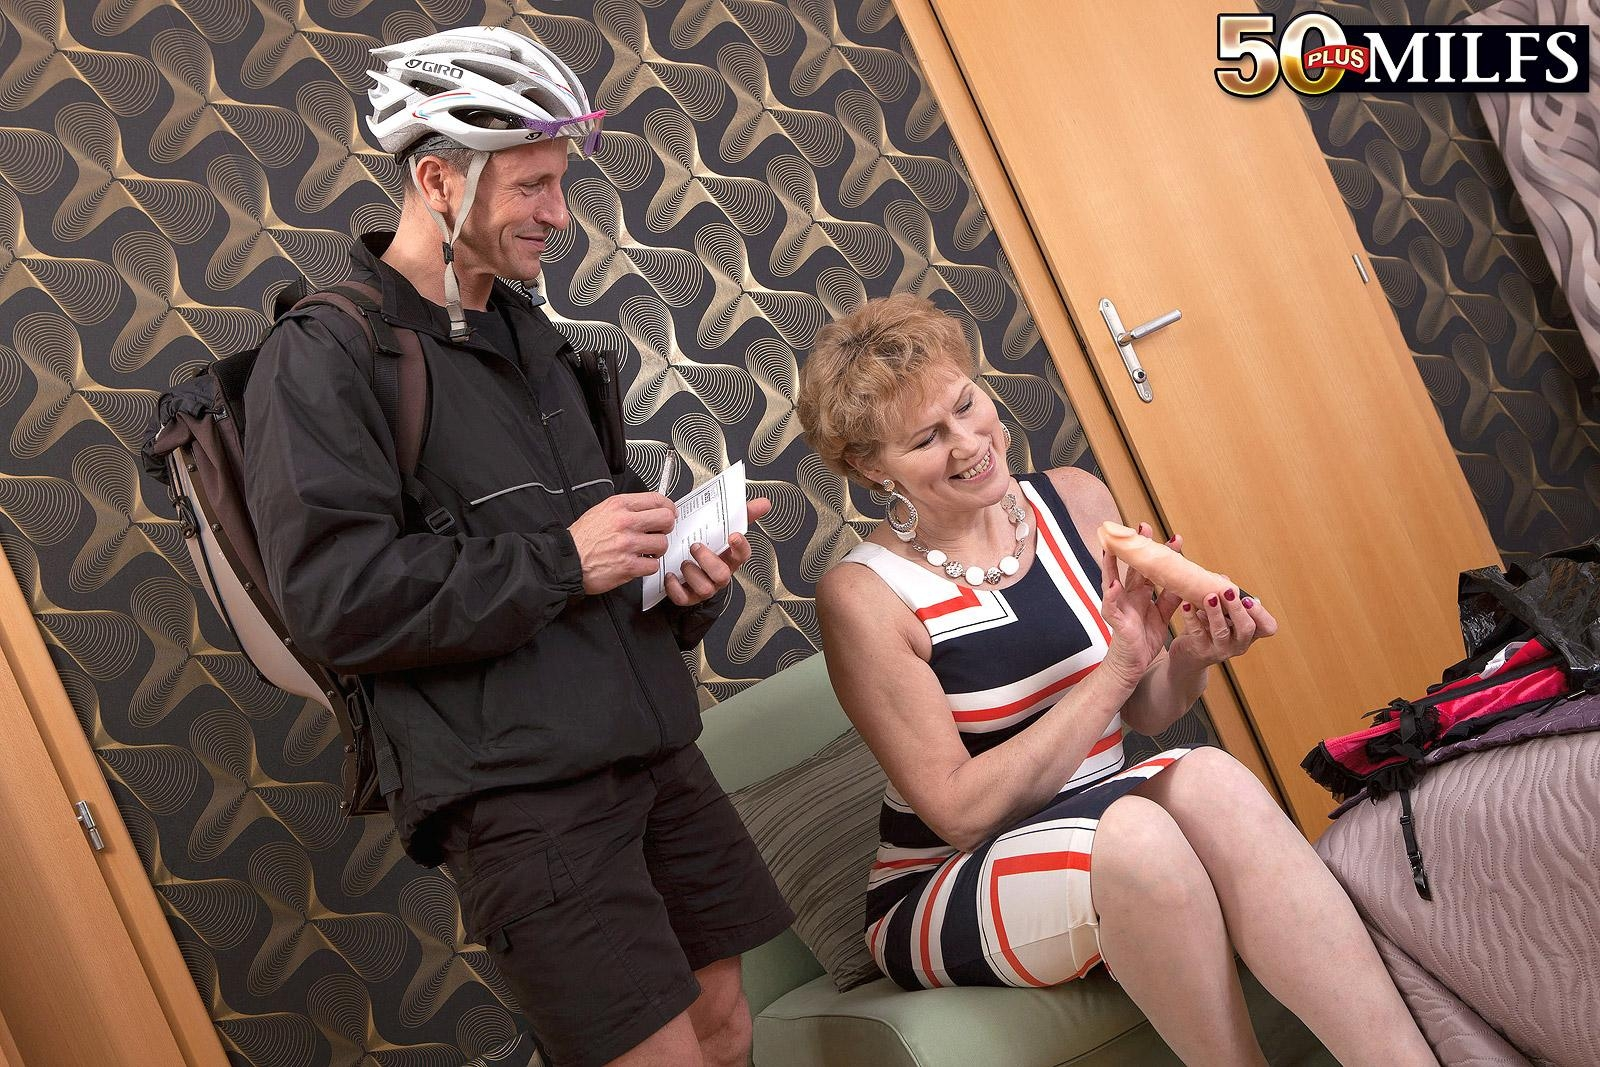 Clothed older woman Georgina seducing pedal bike courier with a blow job in stockings